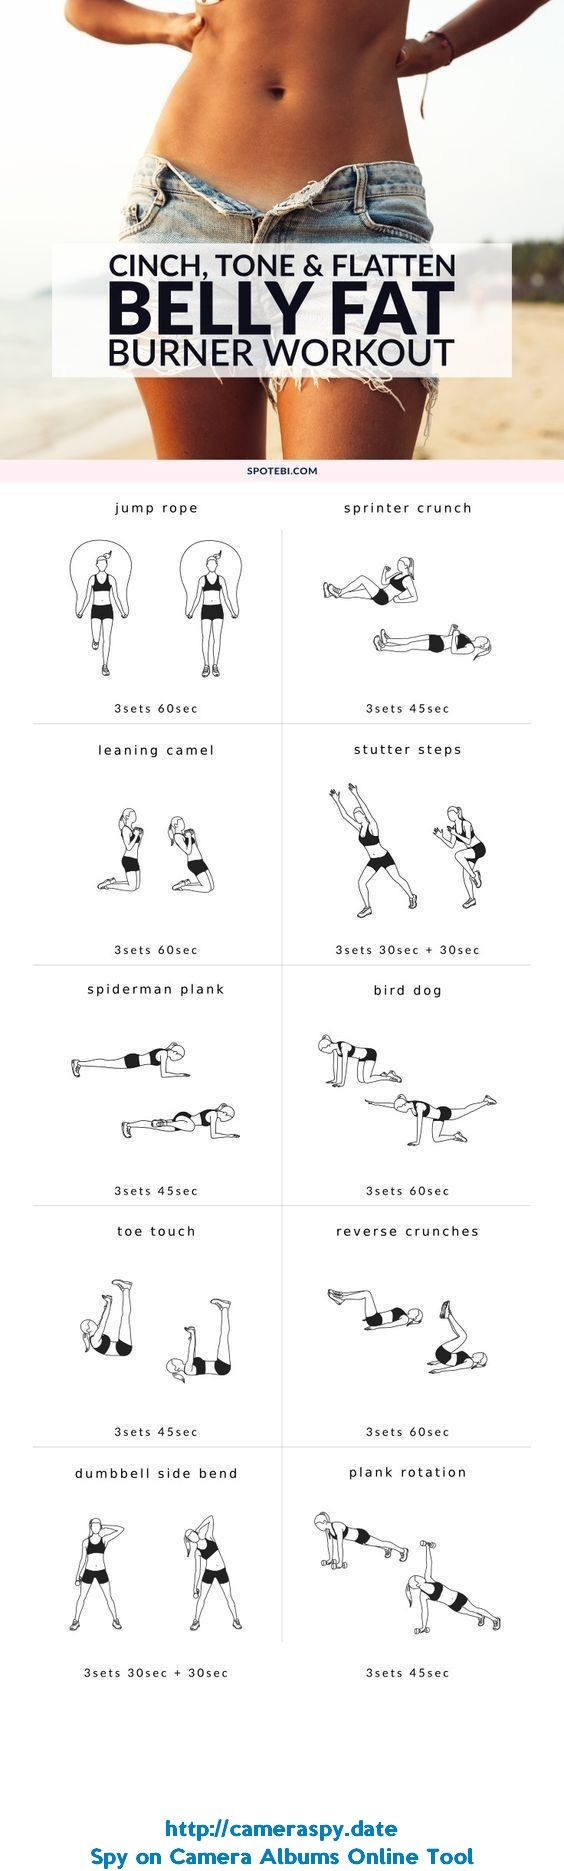 See more here â–º www.youtube.com/... Tags: tips for teens to lose weight, tips for losing weight, good tips for losing weight fast - Flatten your abs and blast calories with these 10 moves! A belly fat burner workout to tone up your